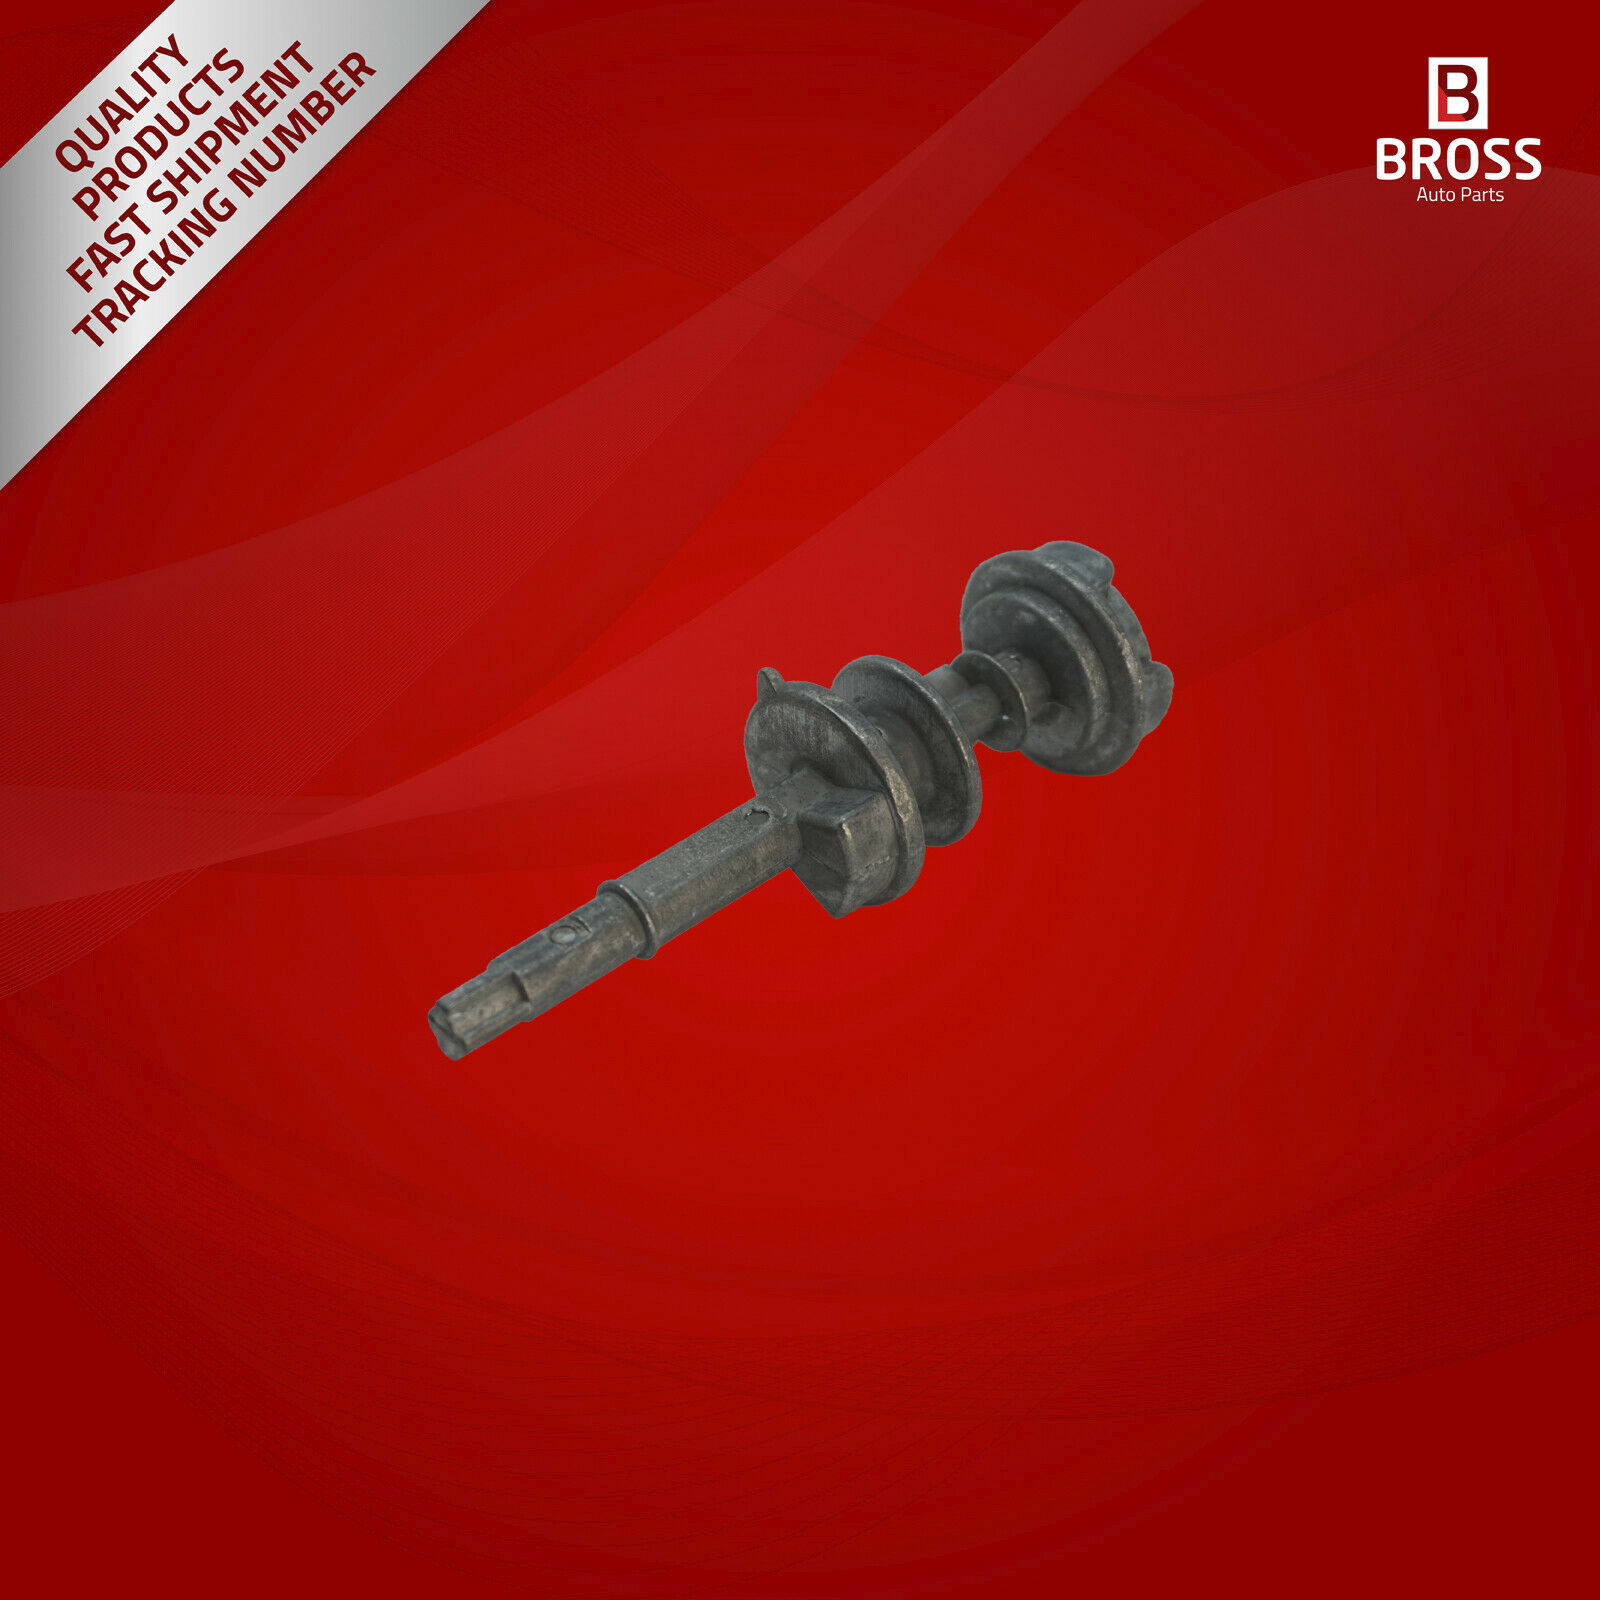 Bross BSP14 Ignition Lock Cylinder Shaft For BMW E34 1988-1996 E36 1990-2000